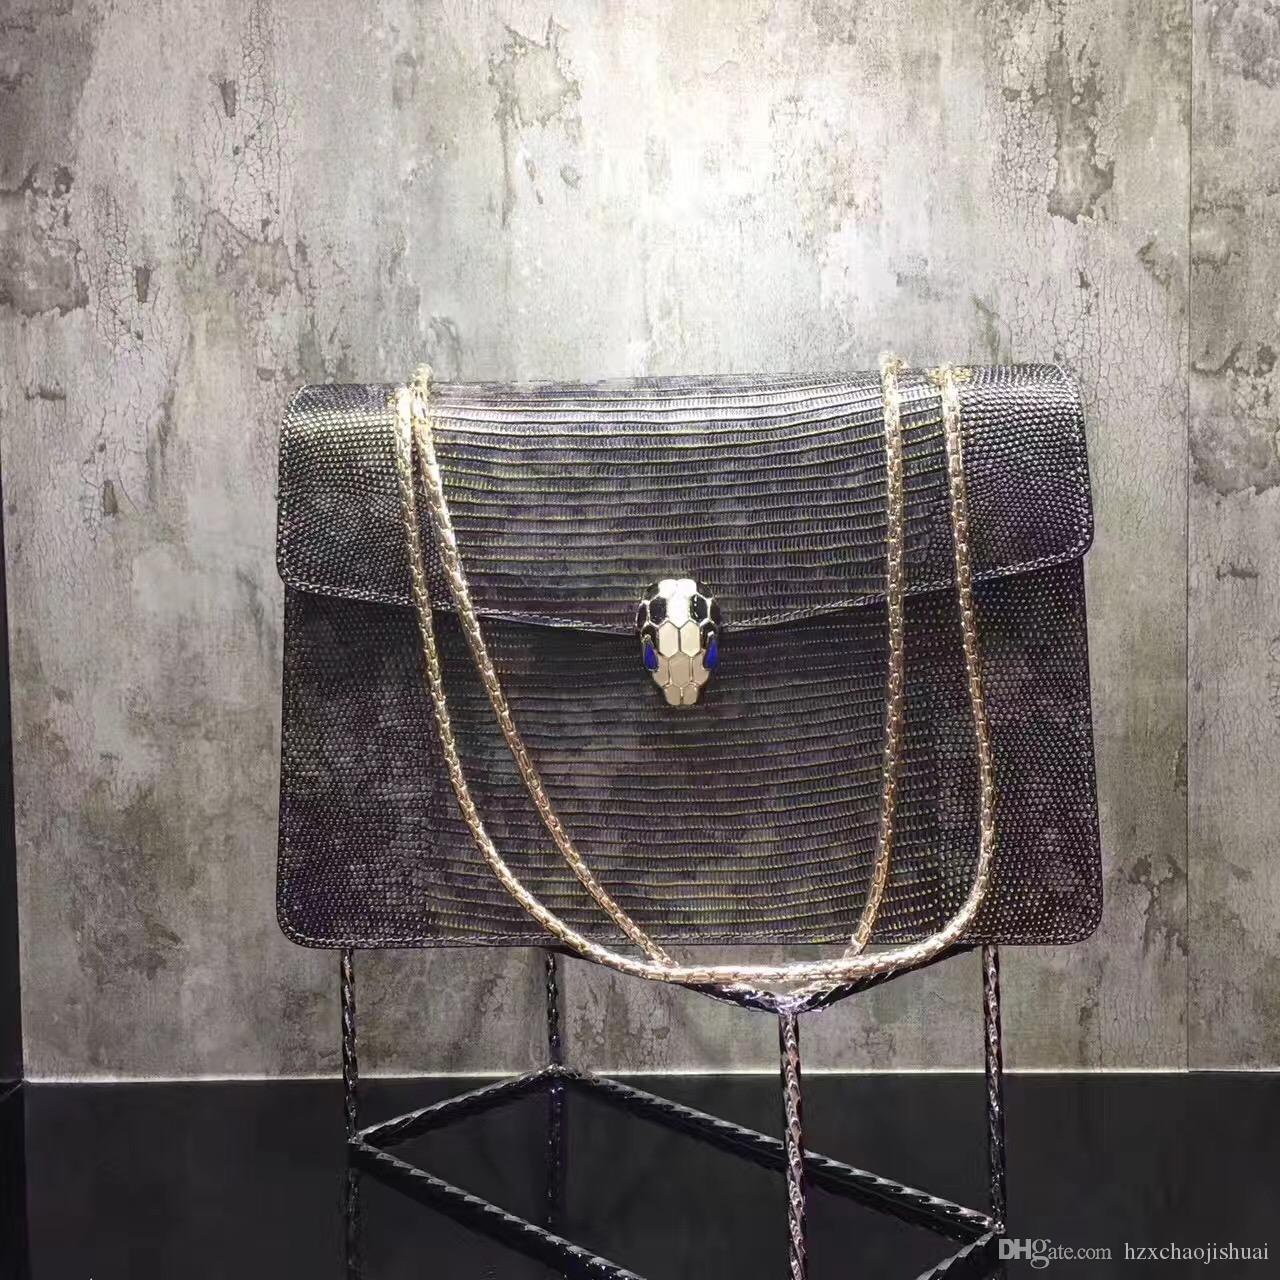 2018 B Home Leather Color A Retro Snake Head Package Chain Leather Vintage Bag Shoulder Messenger B